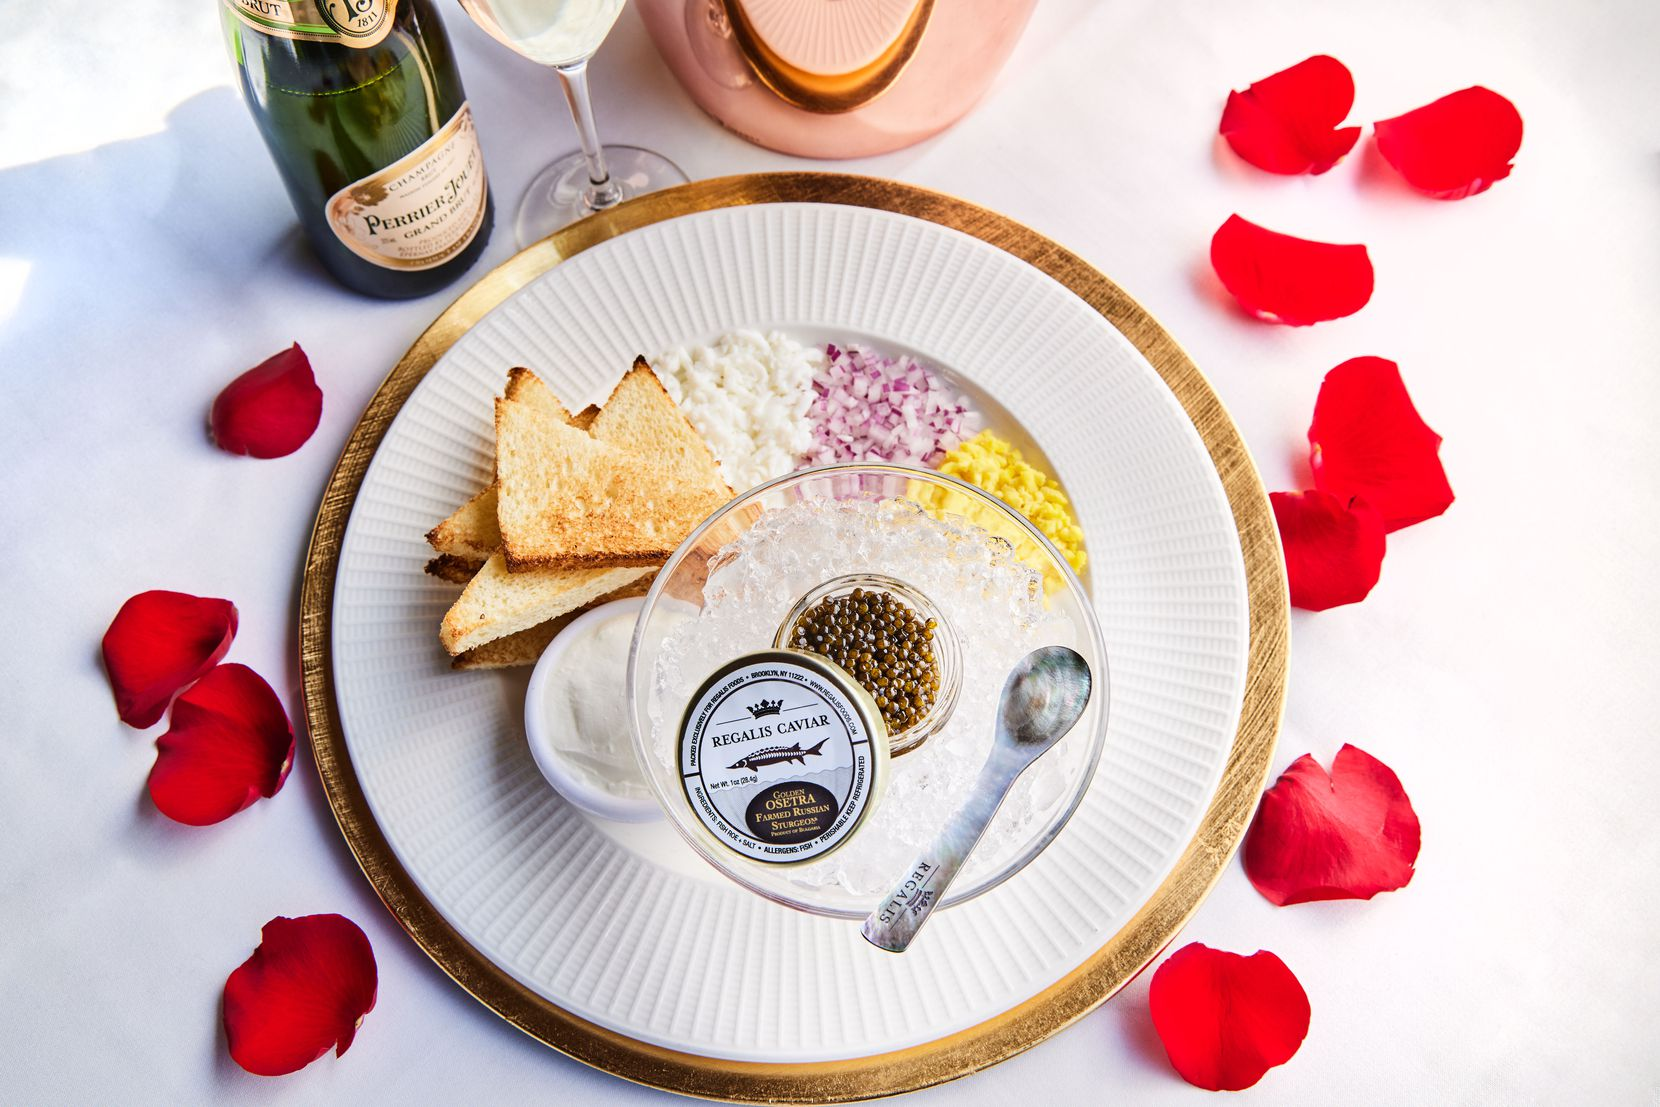 Al Biernat's offers the Premium Osetra Caviar Package as part of its Valentine's Day offerings this year.